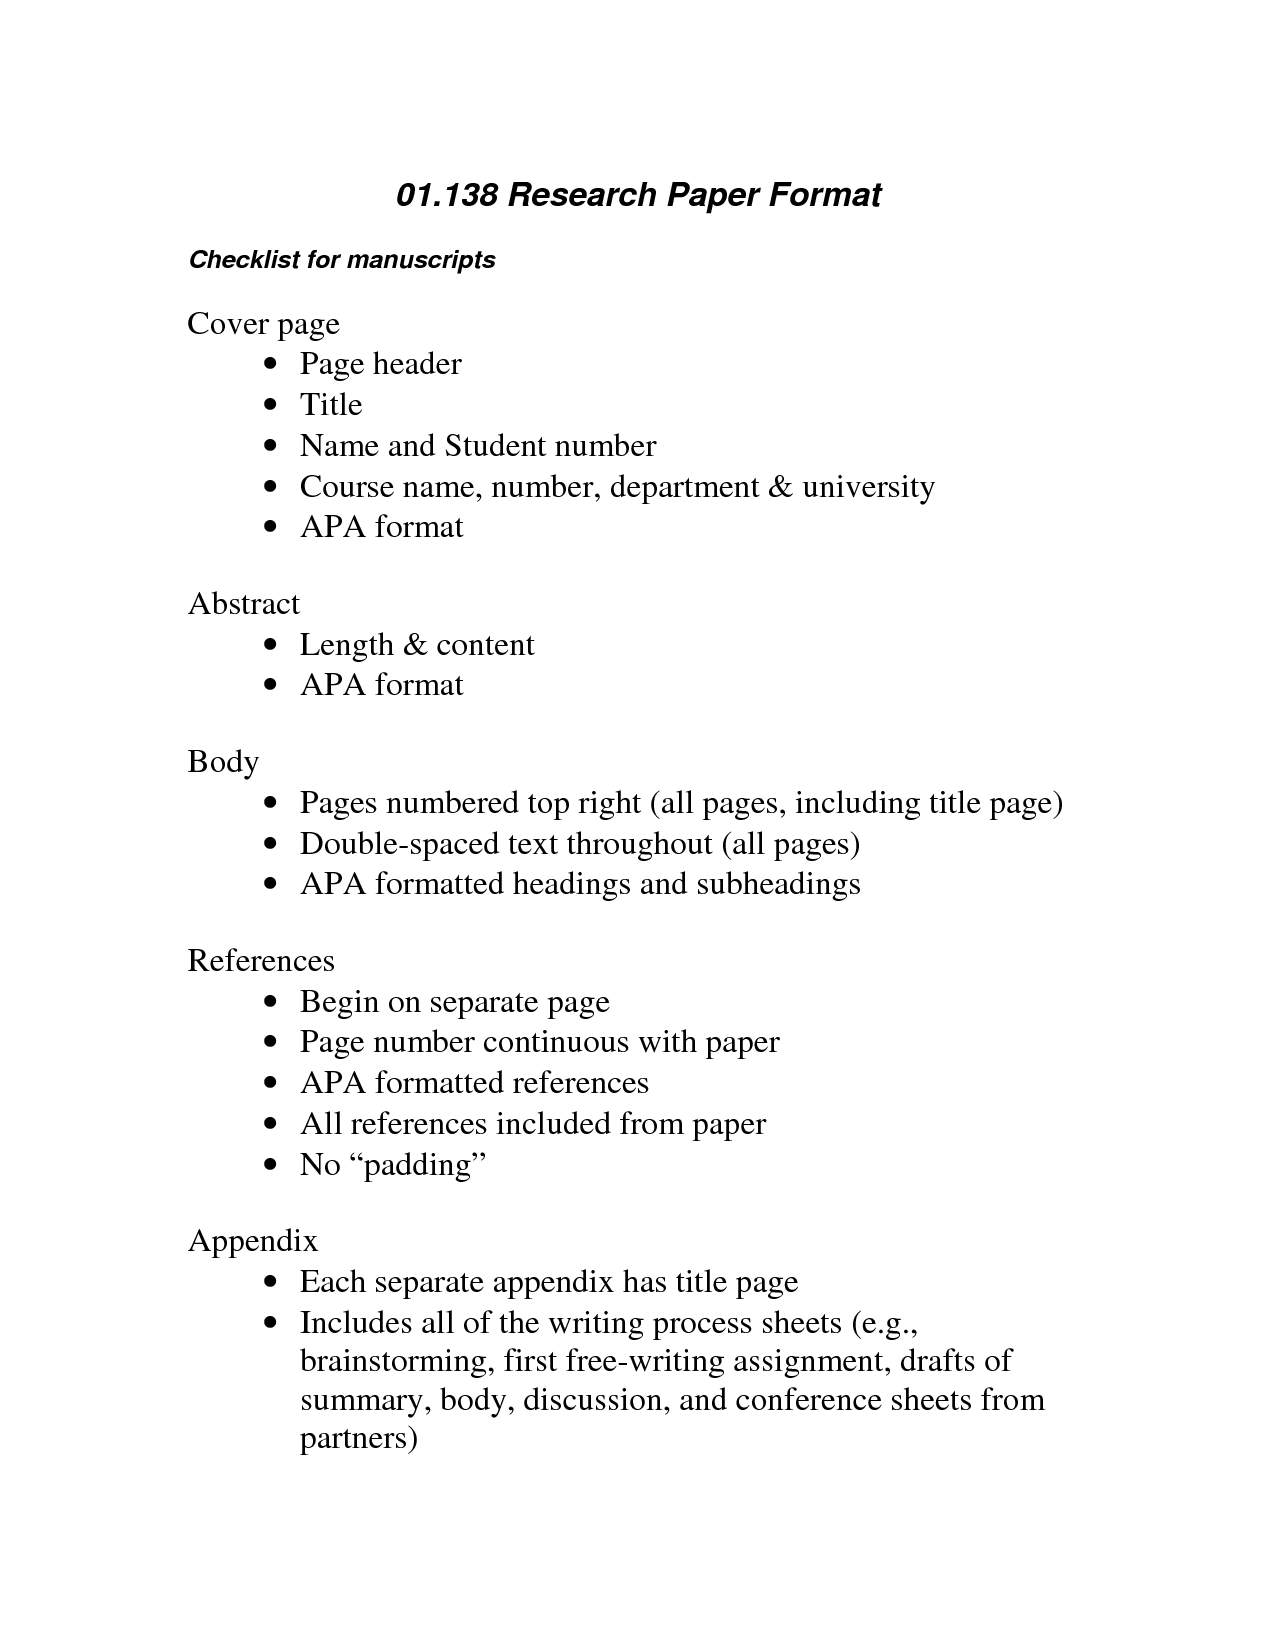 apa outline sample